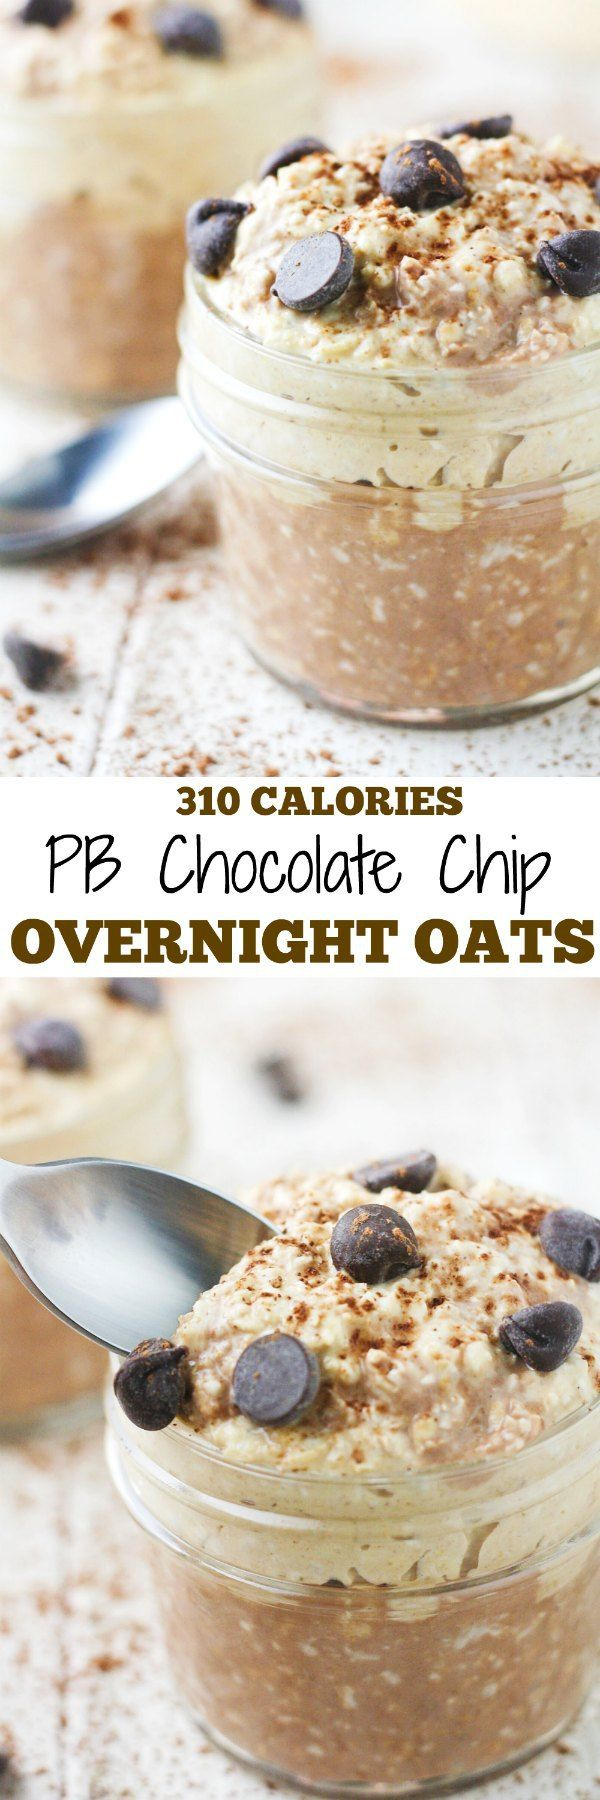 Start your day off perfectly with a bowl of PB Chocolate Chip Overnight Oats! Low calorie thanks to the PB Fit powder. | itscheatdayeveryday.com